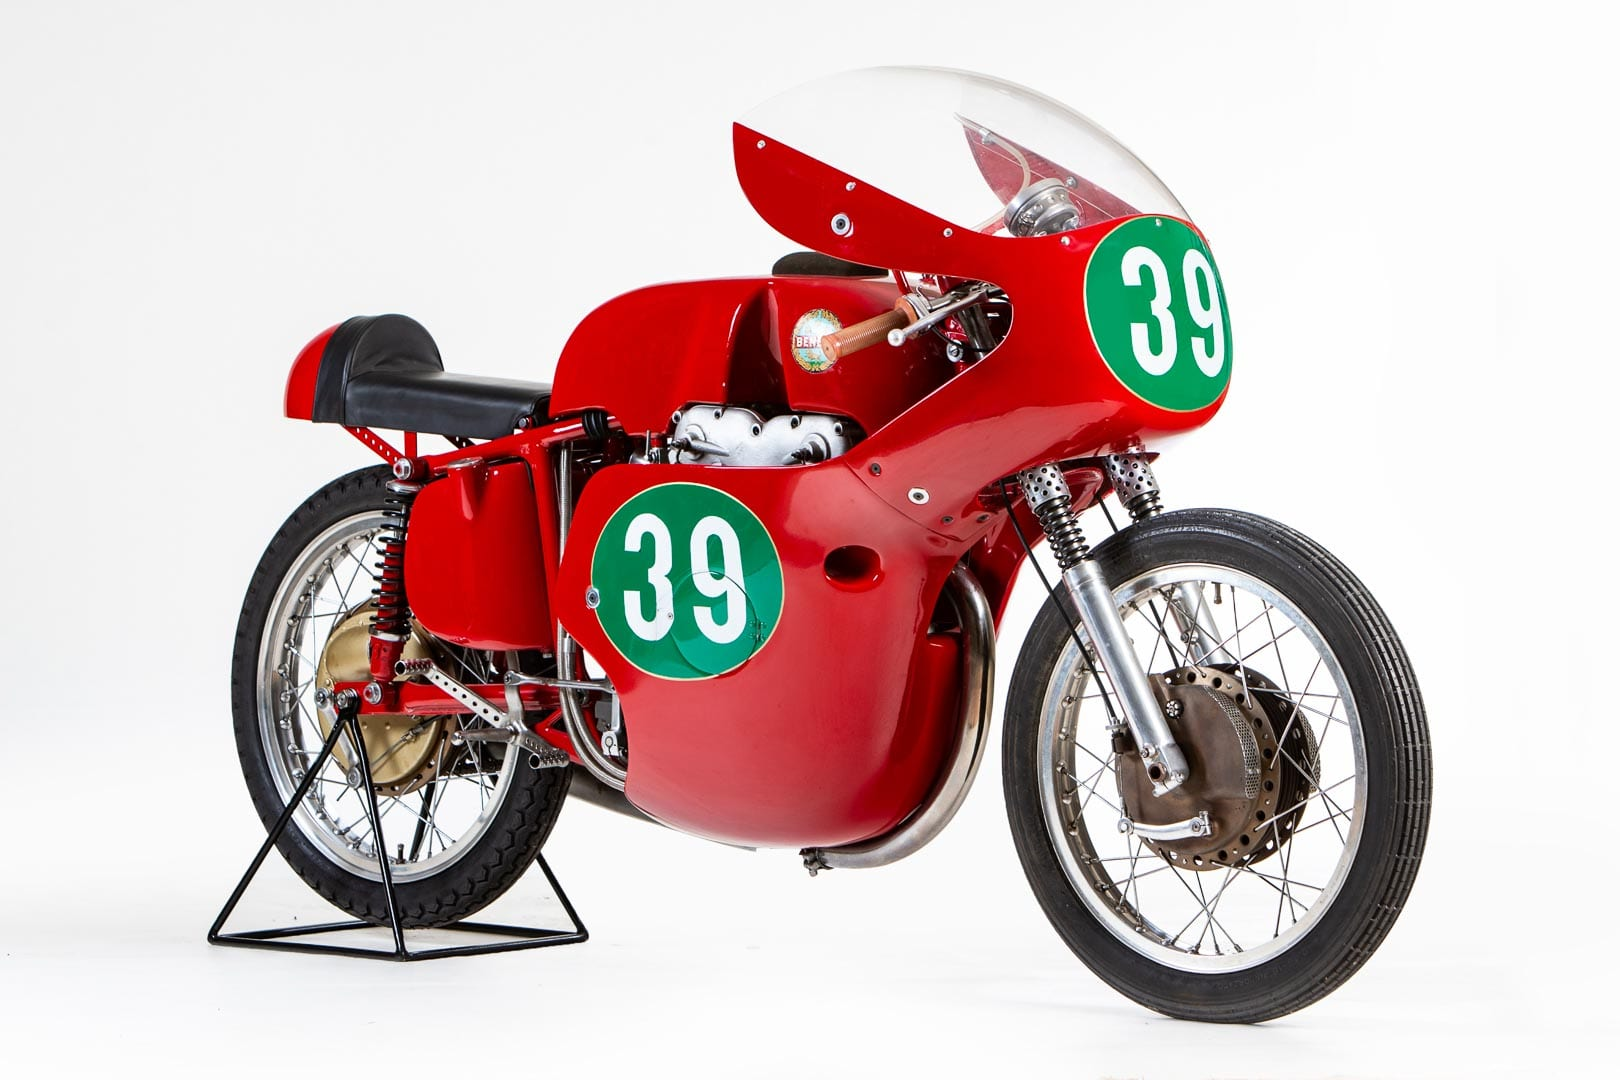 Rare Benelli Bikes for sale at Bonham's Auction